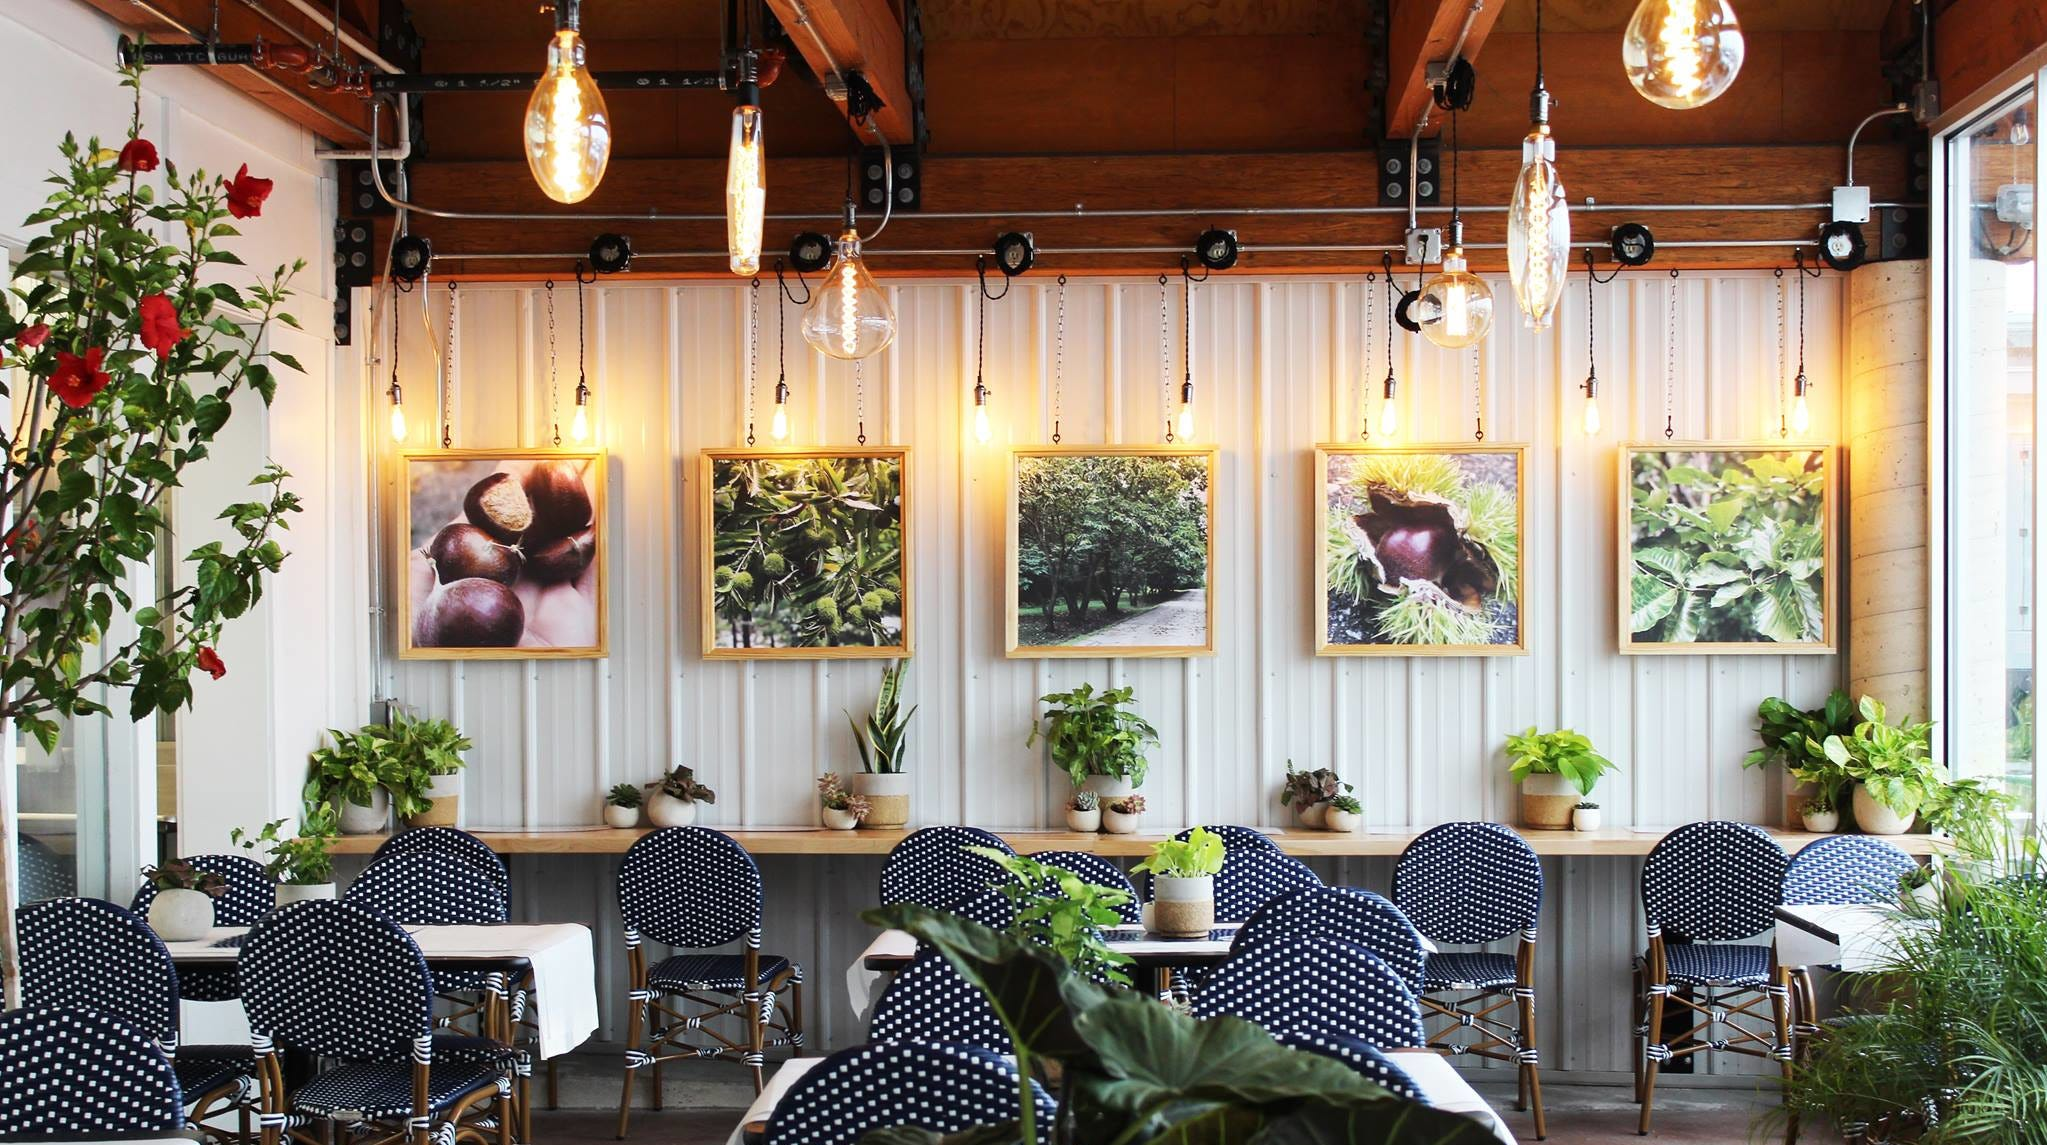 Horrocks adds indoor seating and Groovy Donuts